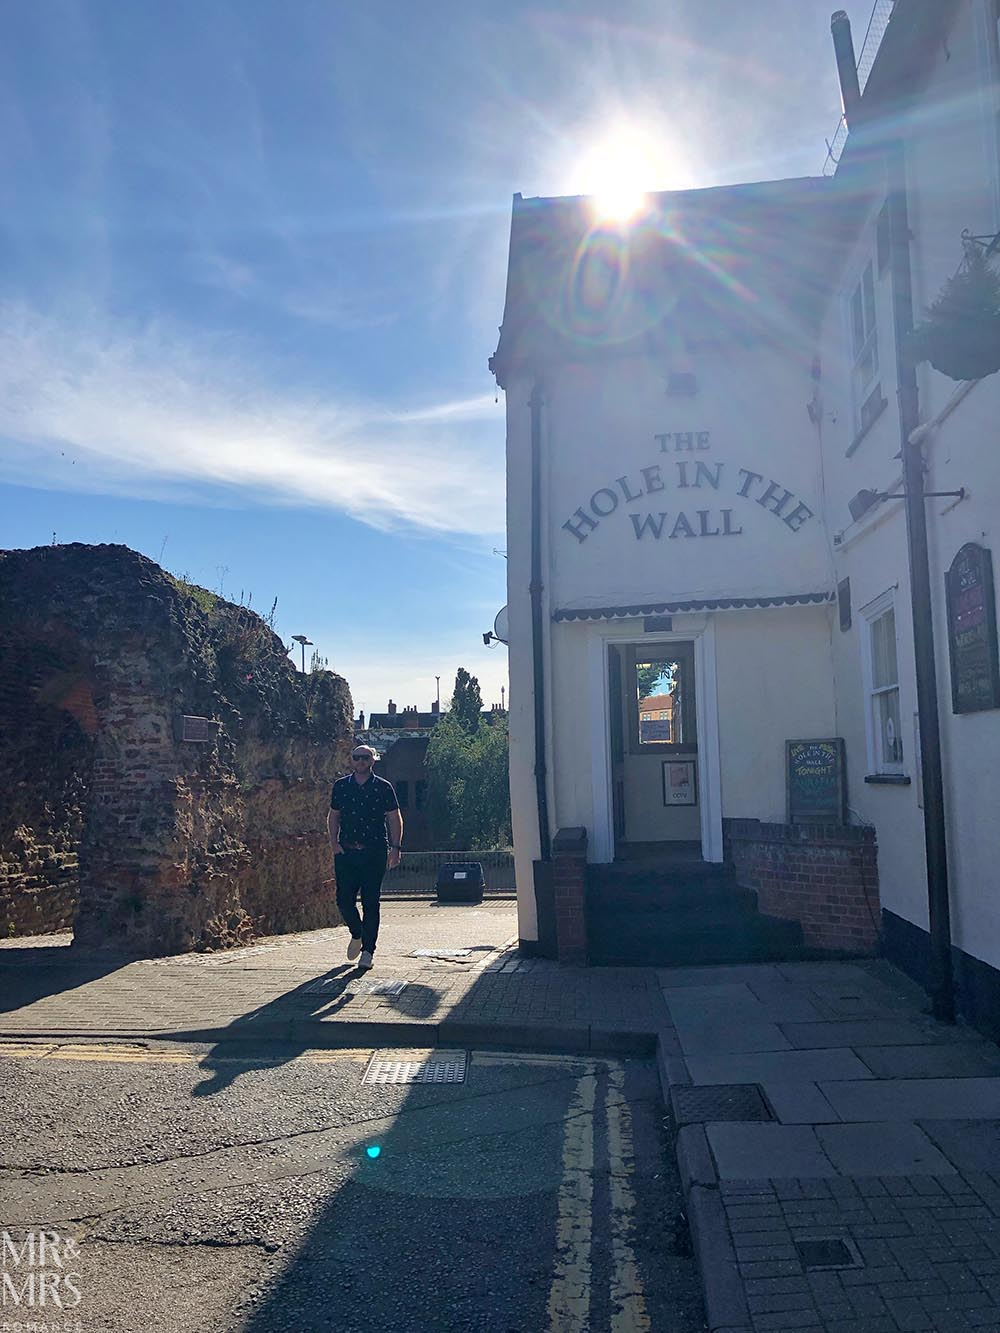 Hole in the Wall Pub, Balkerne Gate, Colchester, Essex